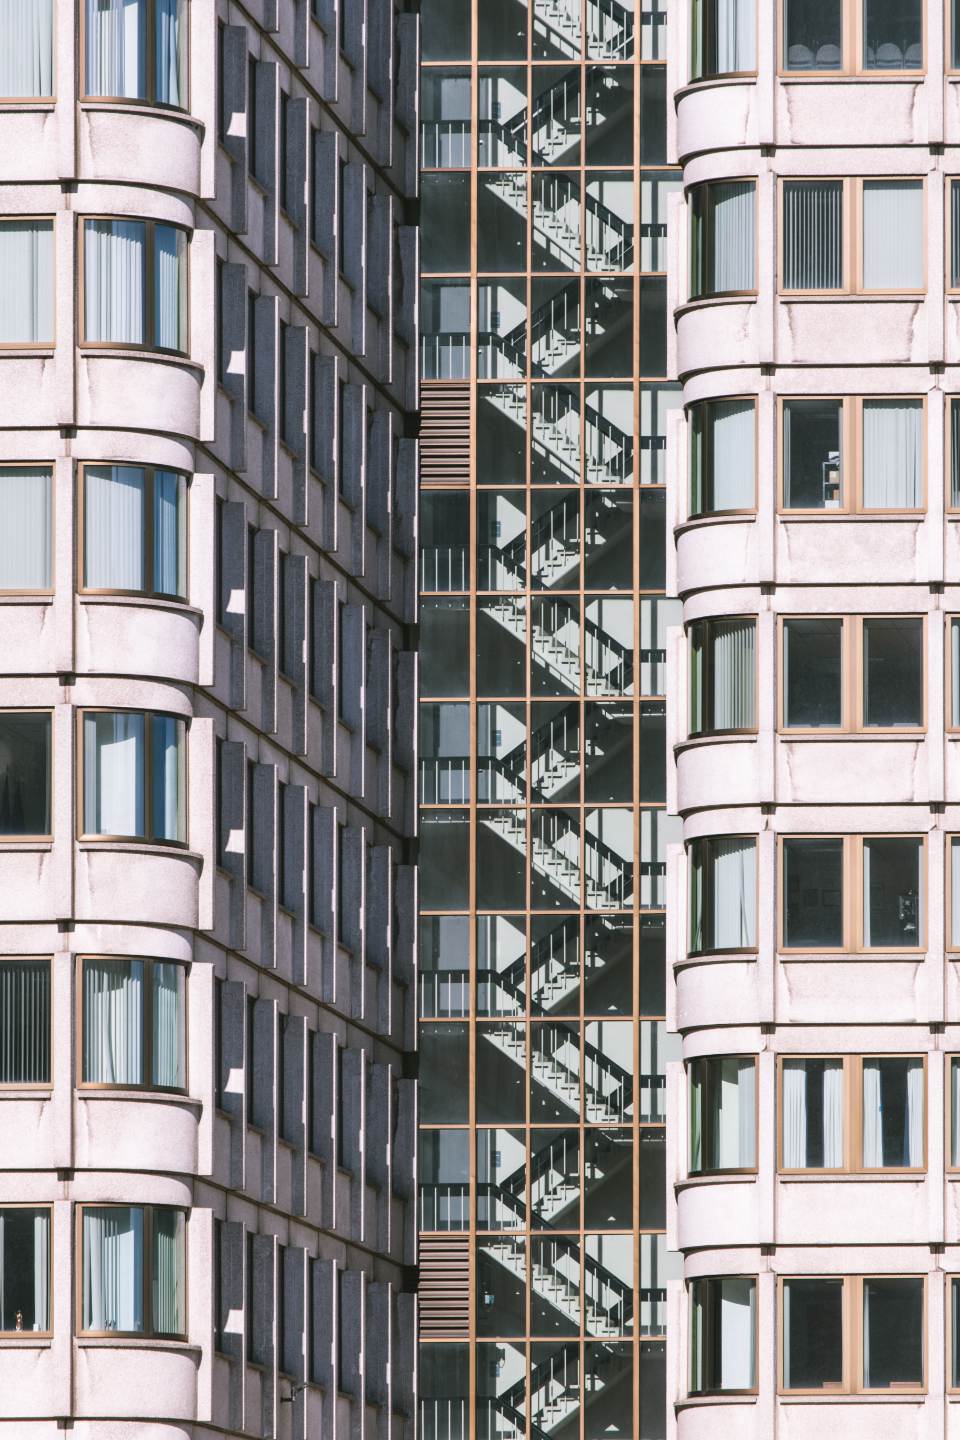 city architecture building windows exterior pattern facade tall stairwell stairs apartments business classic design